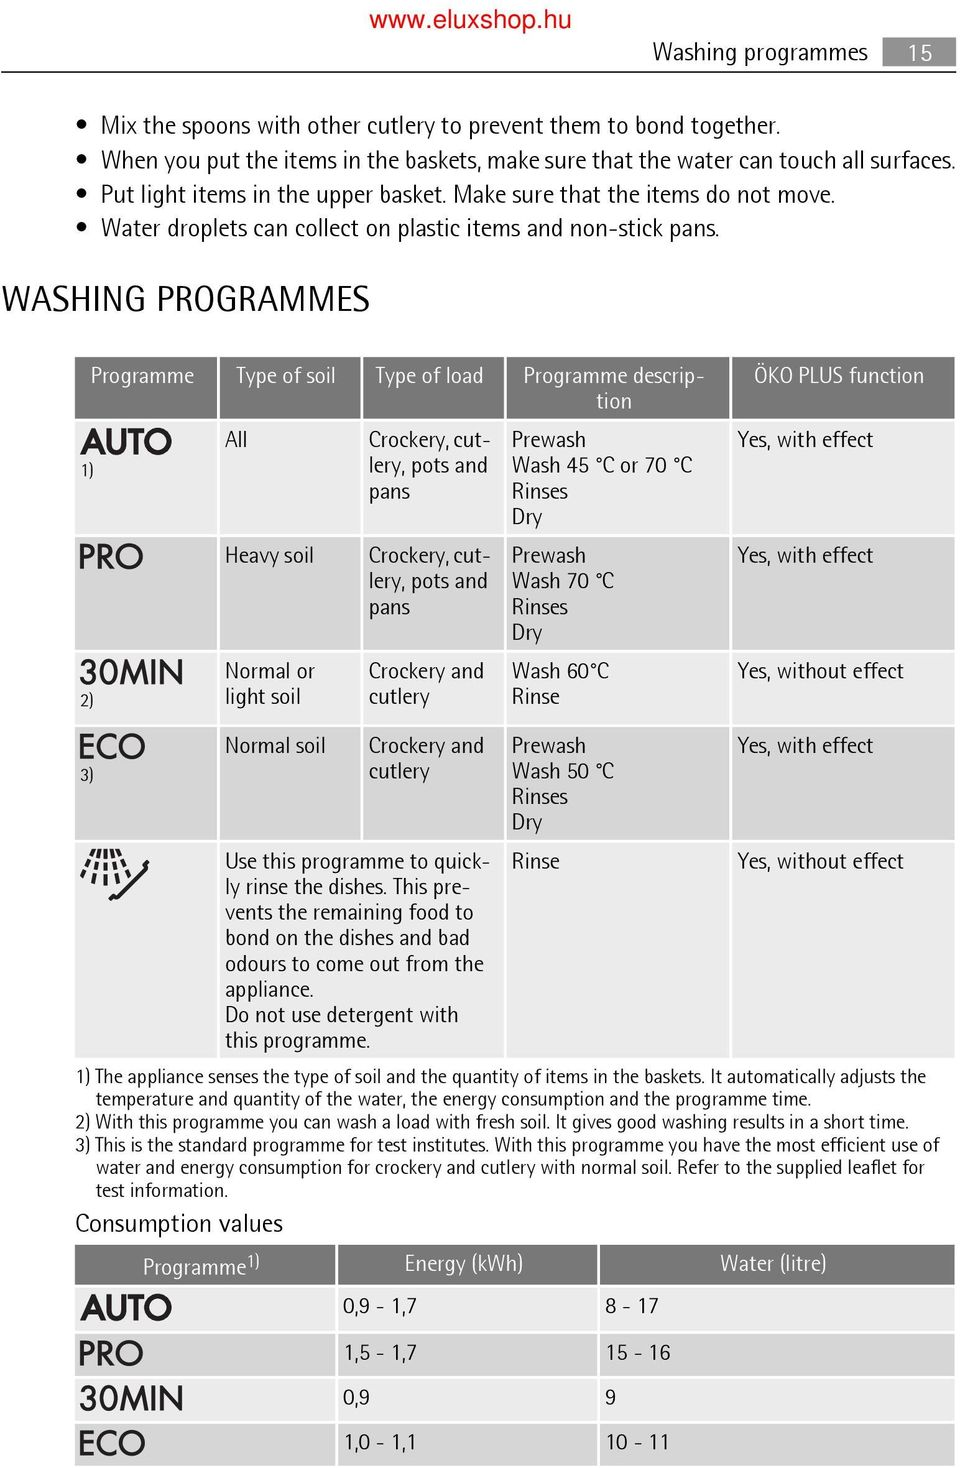 WASHING PROGRAMMES Programme Type of soil Programme description ÖKO PLUS function All Crockery, cut- Prewash lery, pots and Wash 45 C or 70 C pans Rinses Dry Yes, with effect Heavy soil Crockery,